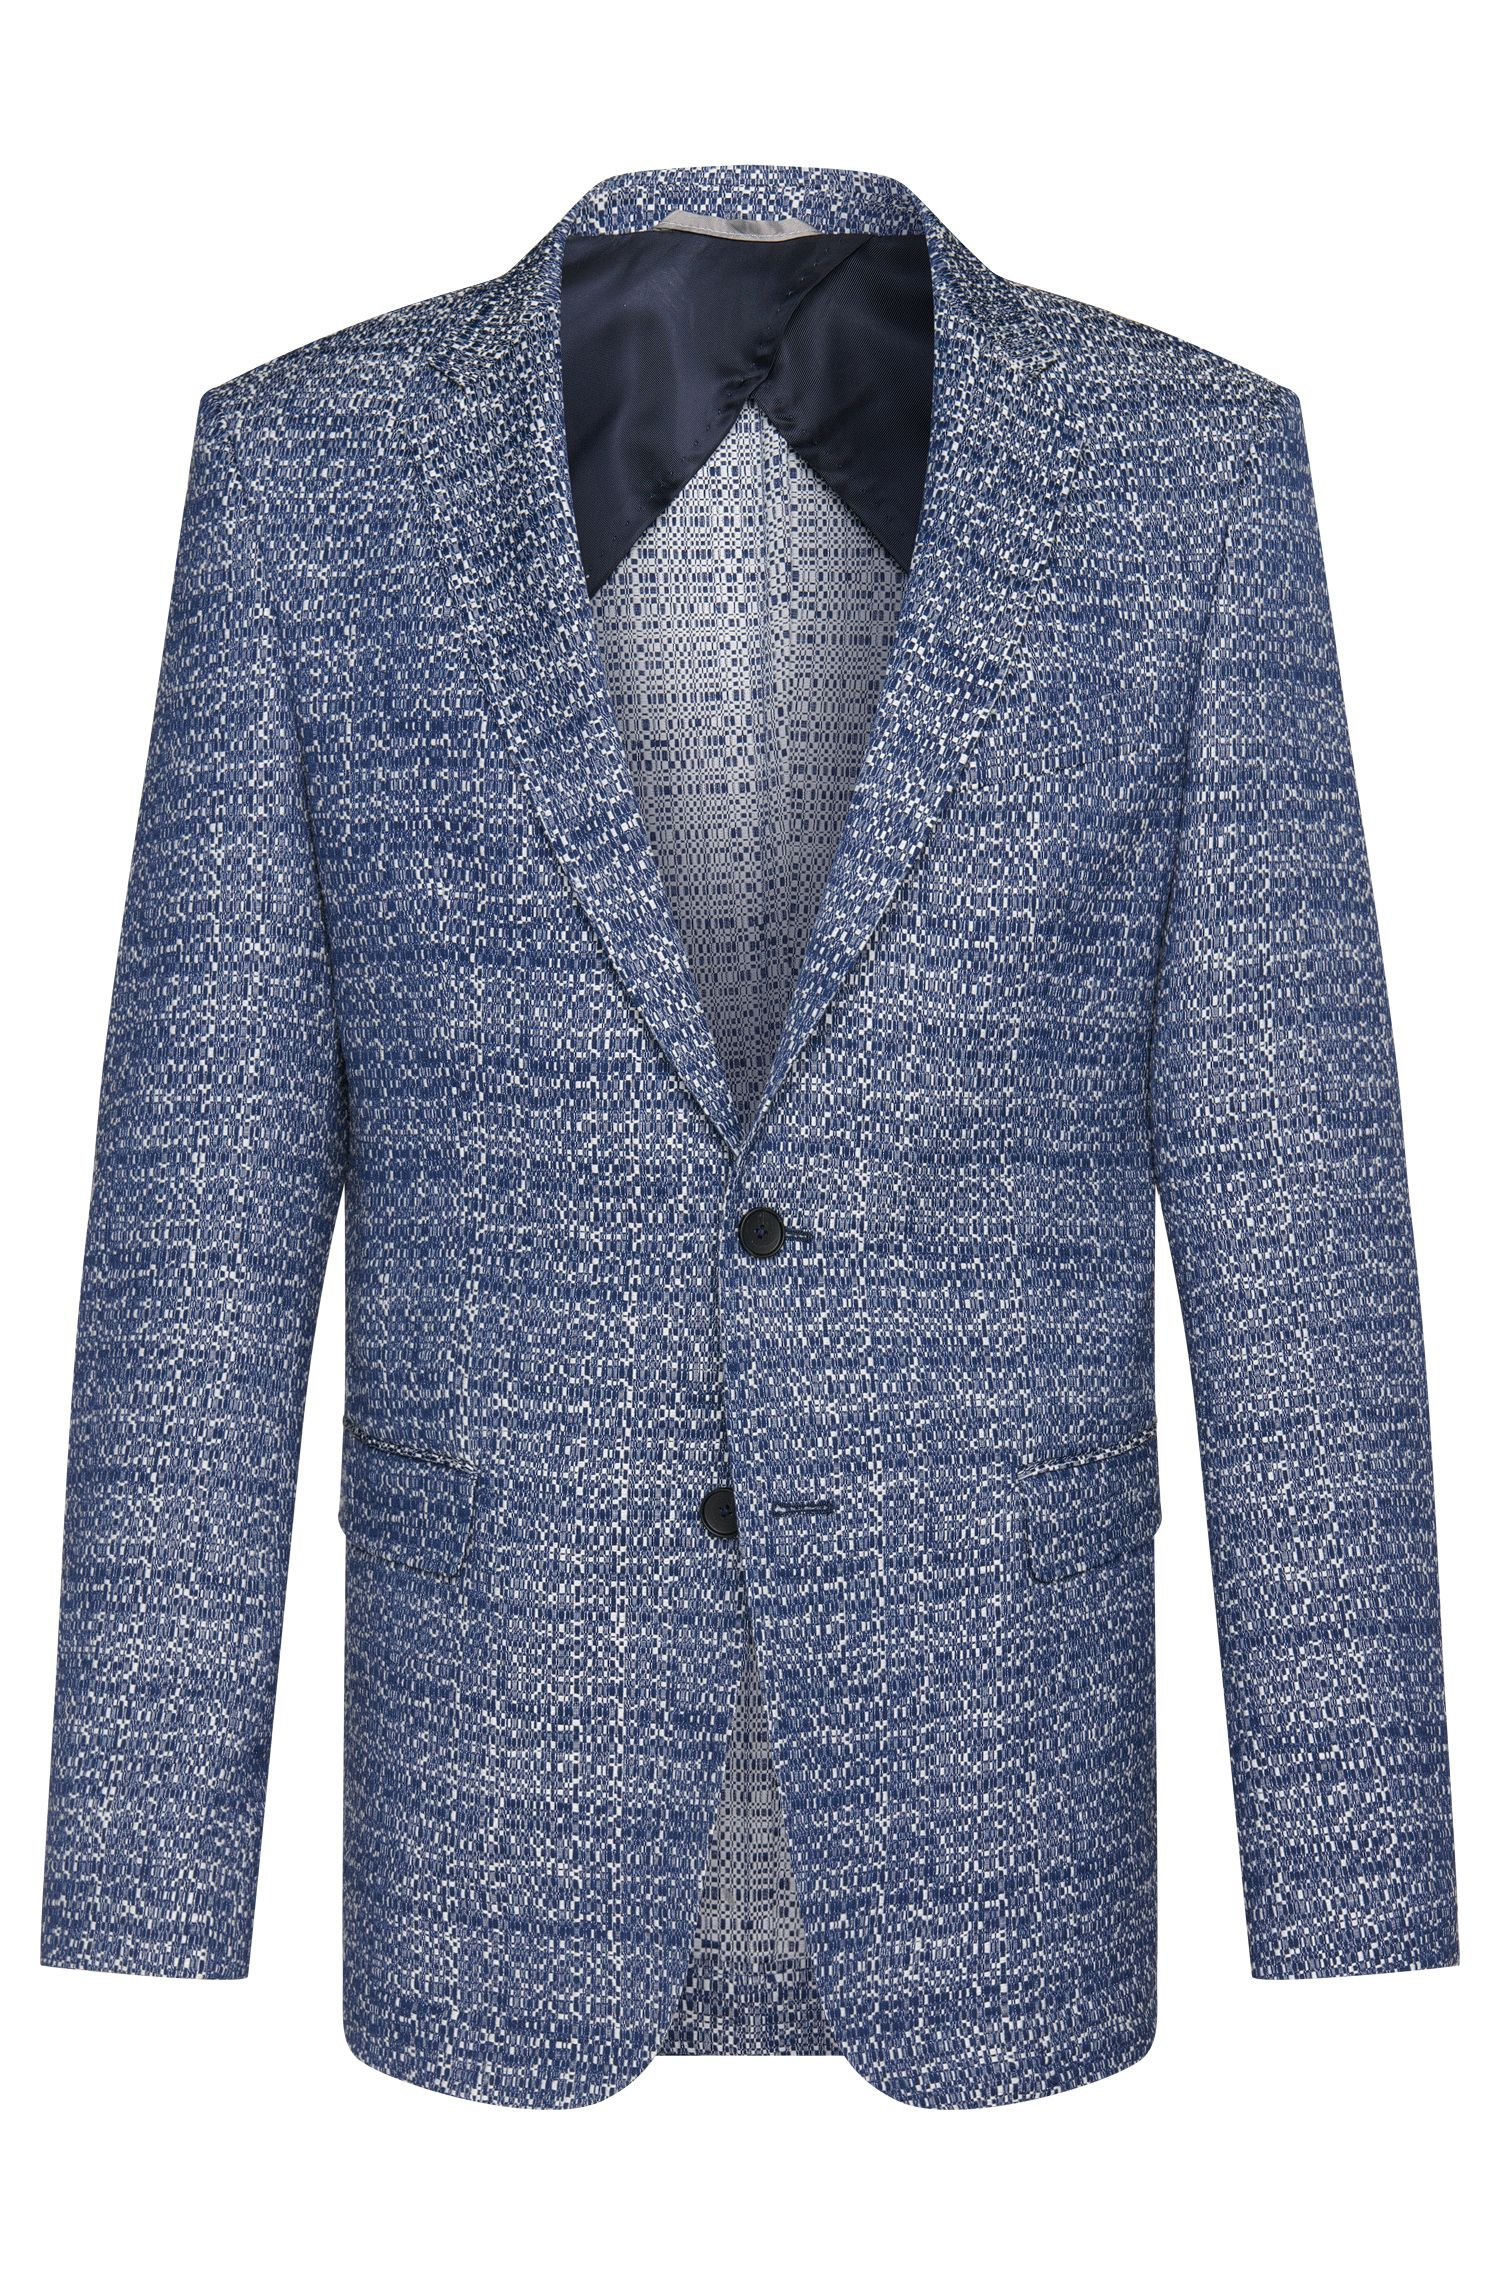 Cotton Blend Jacquard Sport Coat, Slim Fit | Nobis